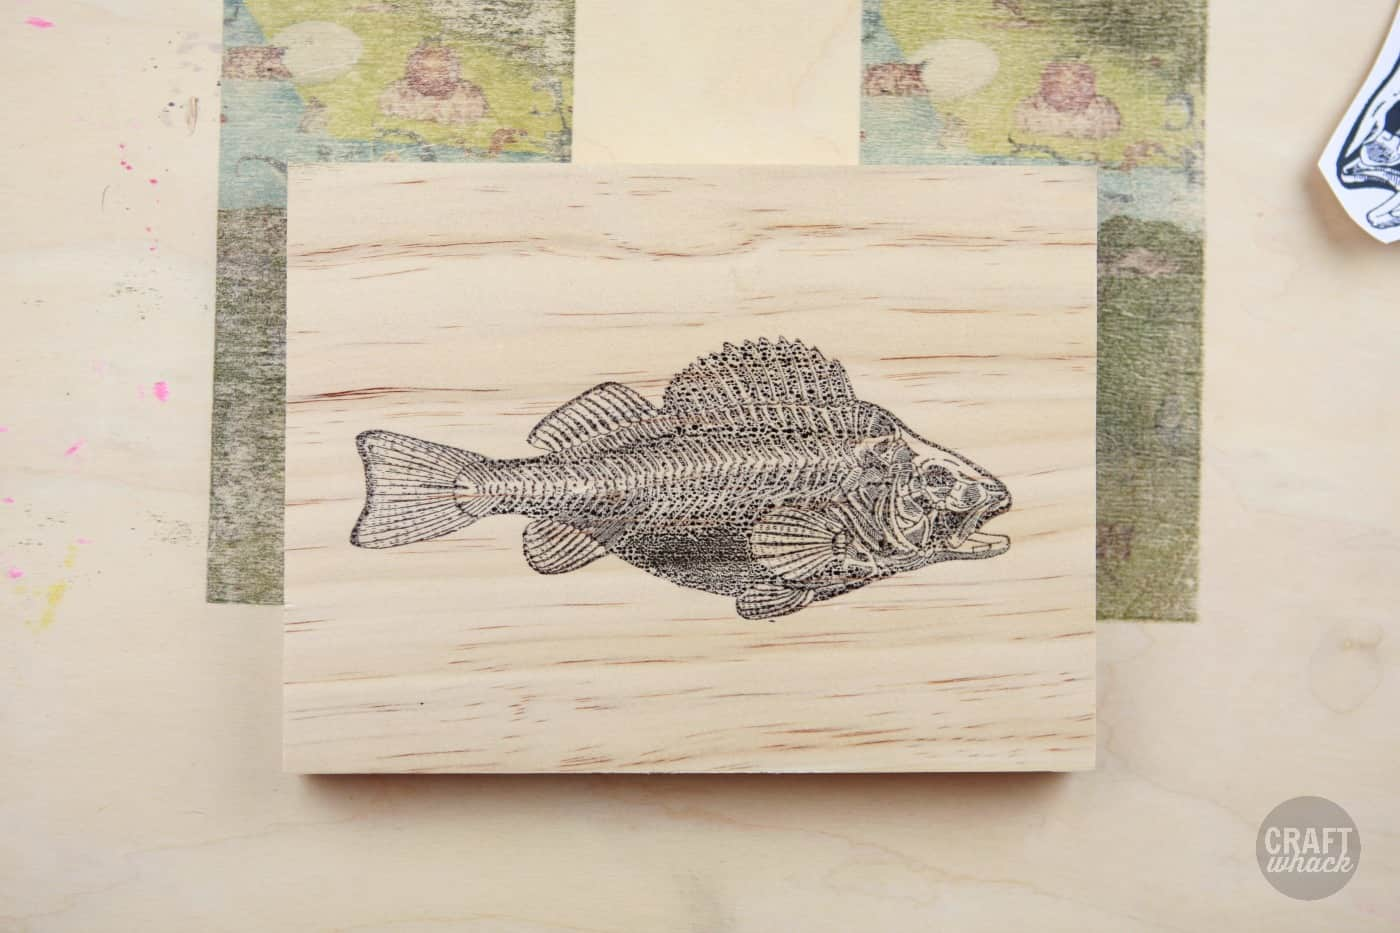 freezer paper transfer on wood - fish image